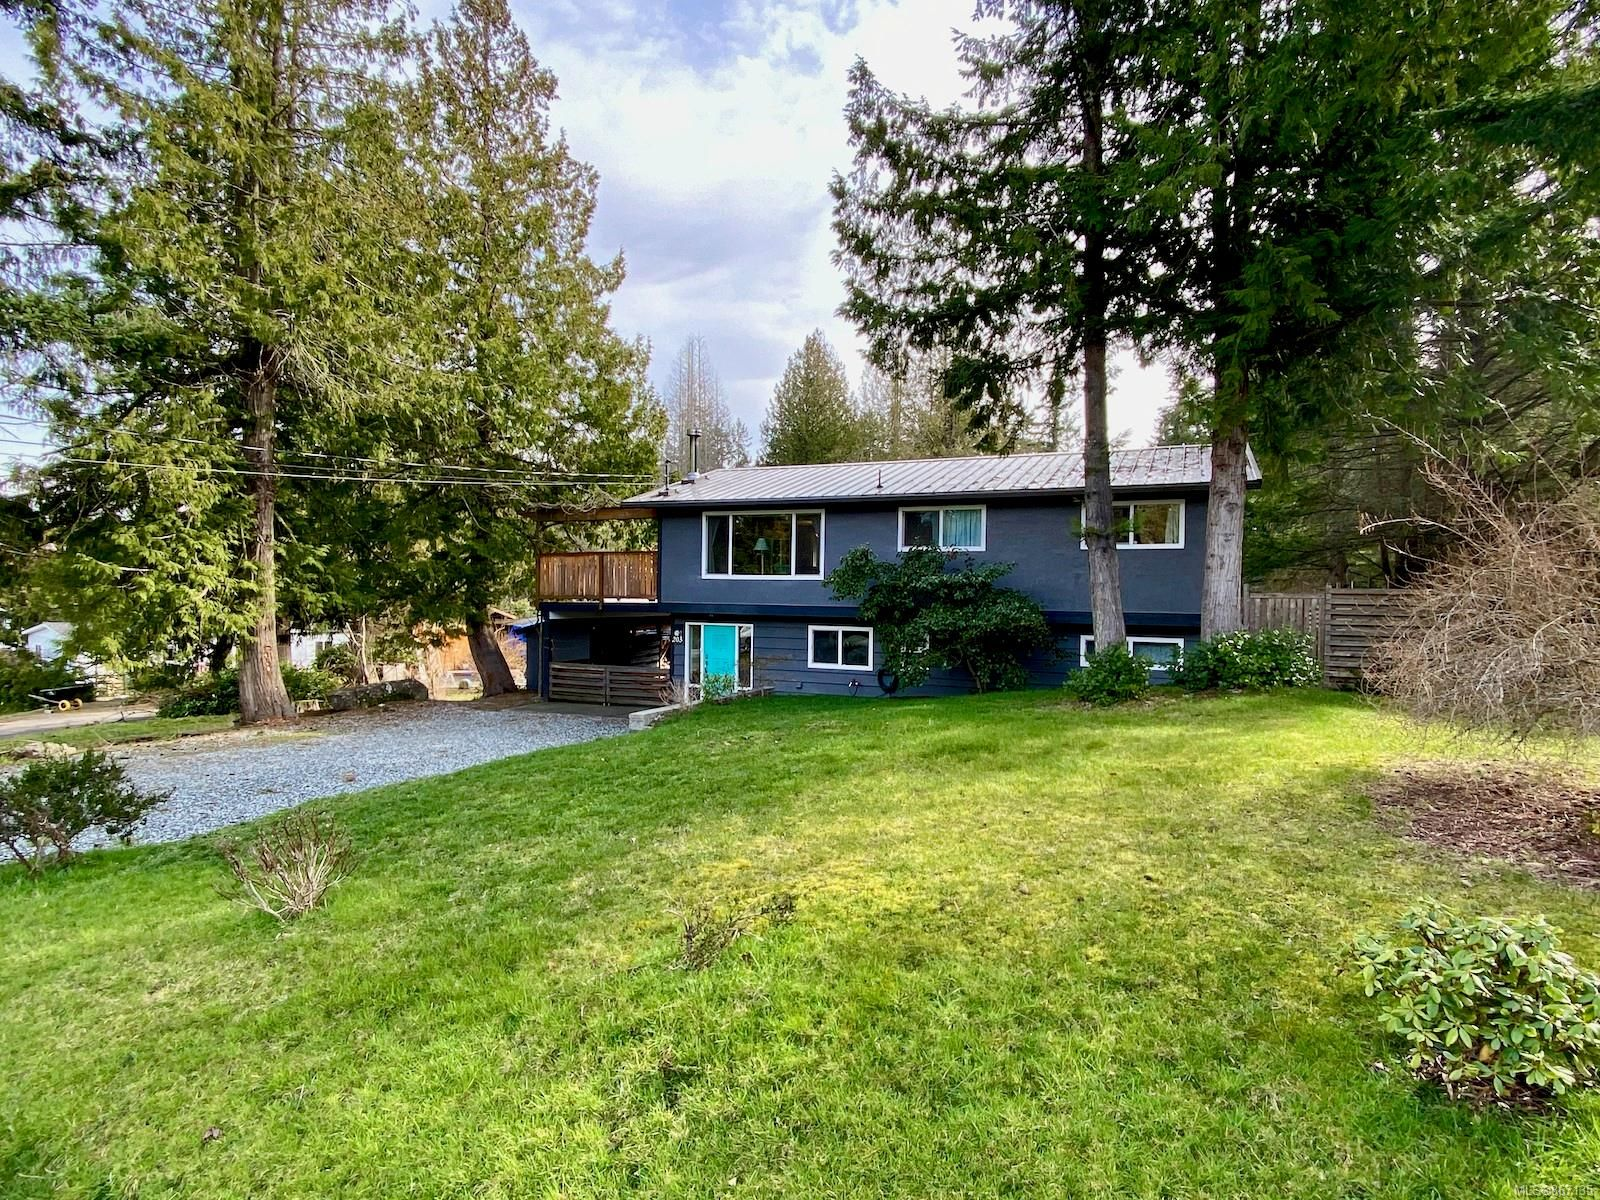 Main Photo: 203 Maliview Dr in : GI Salt Spring House for sale (Gulf Islands)  : MLS®# 867135